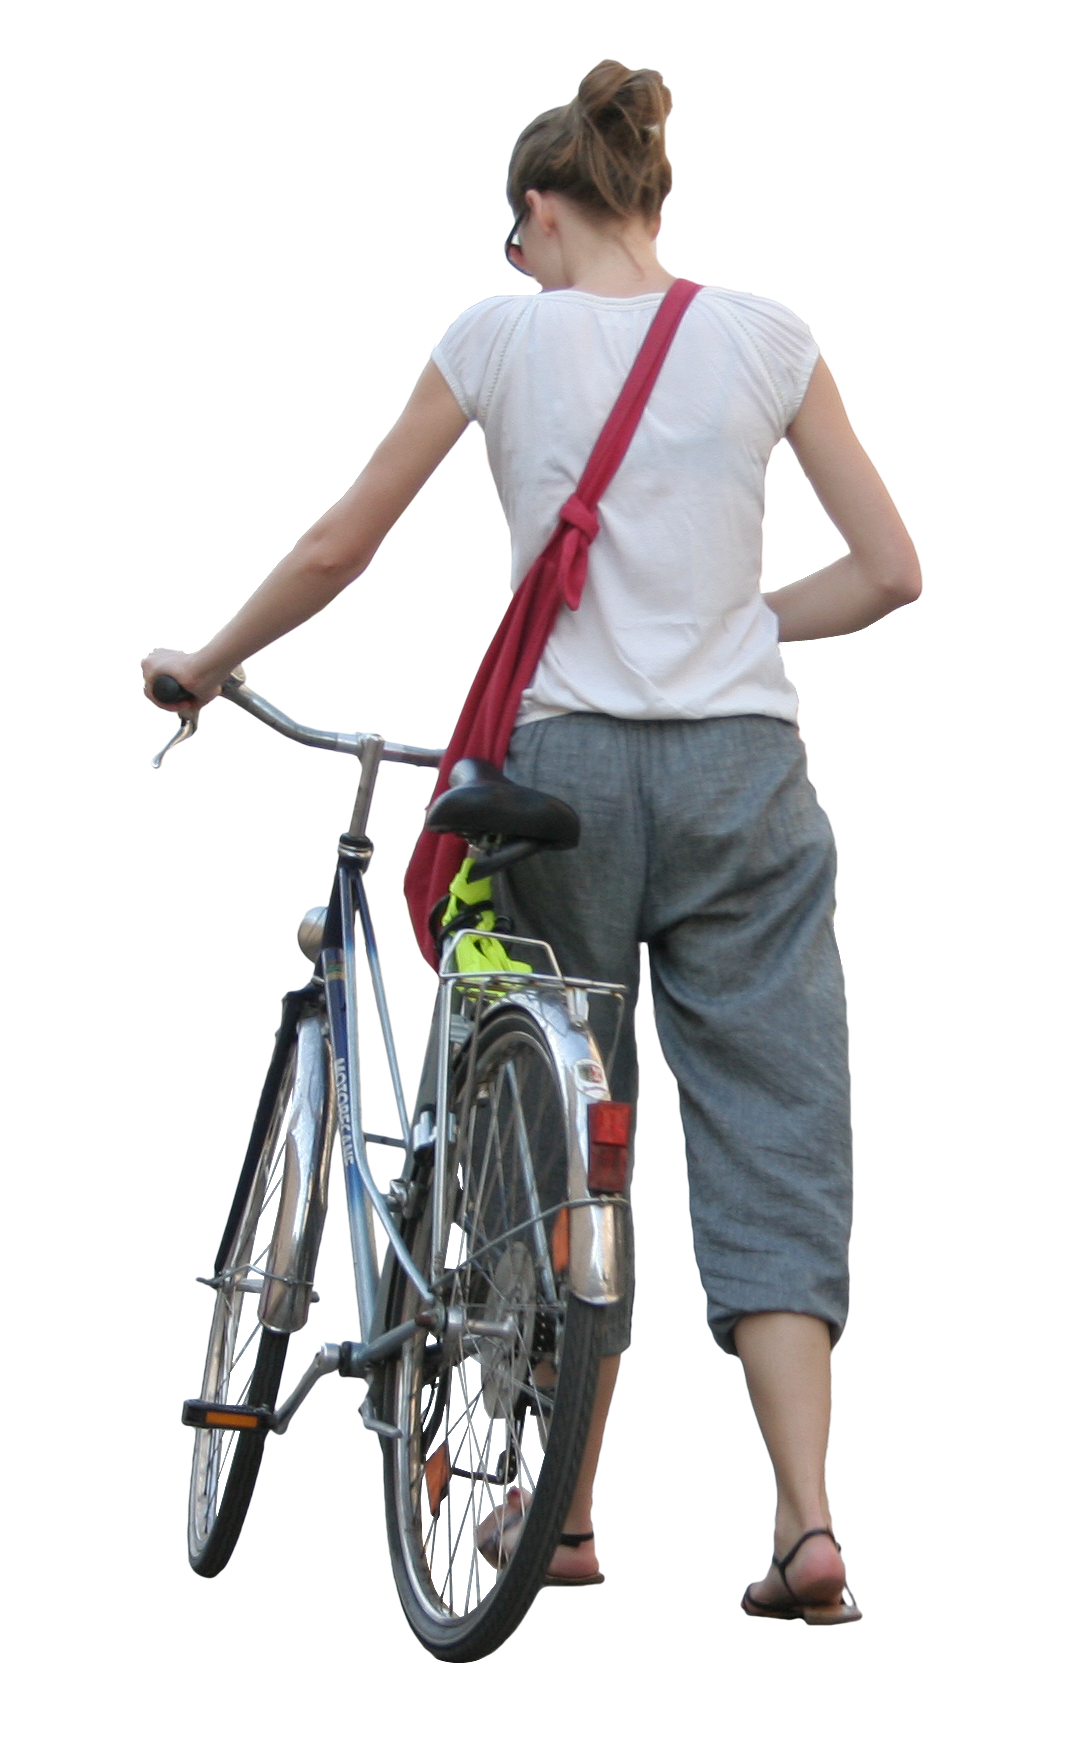 People bike png. Woman with bicycle free